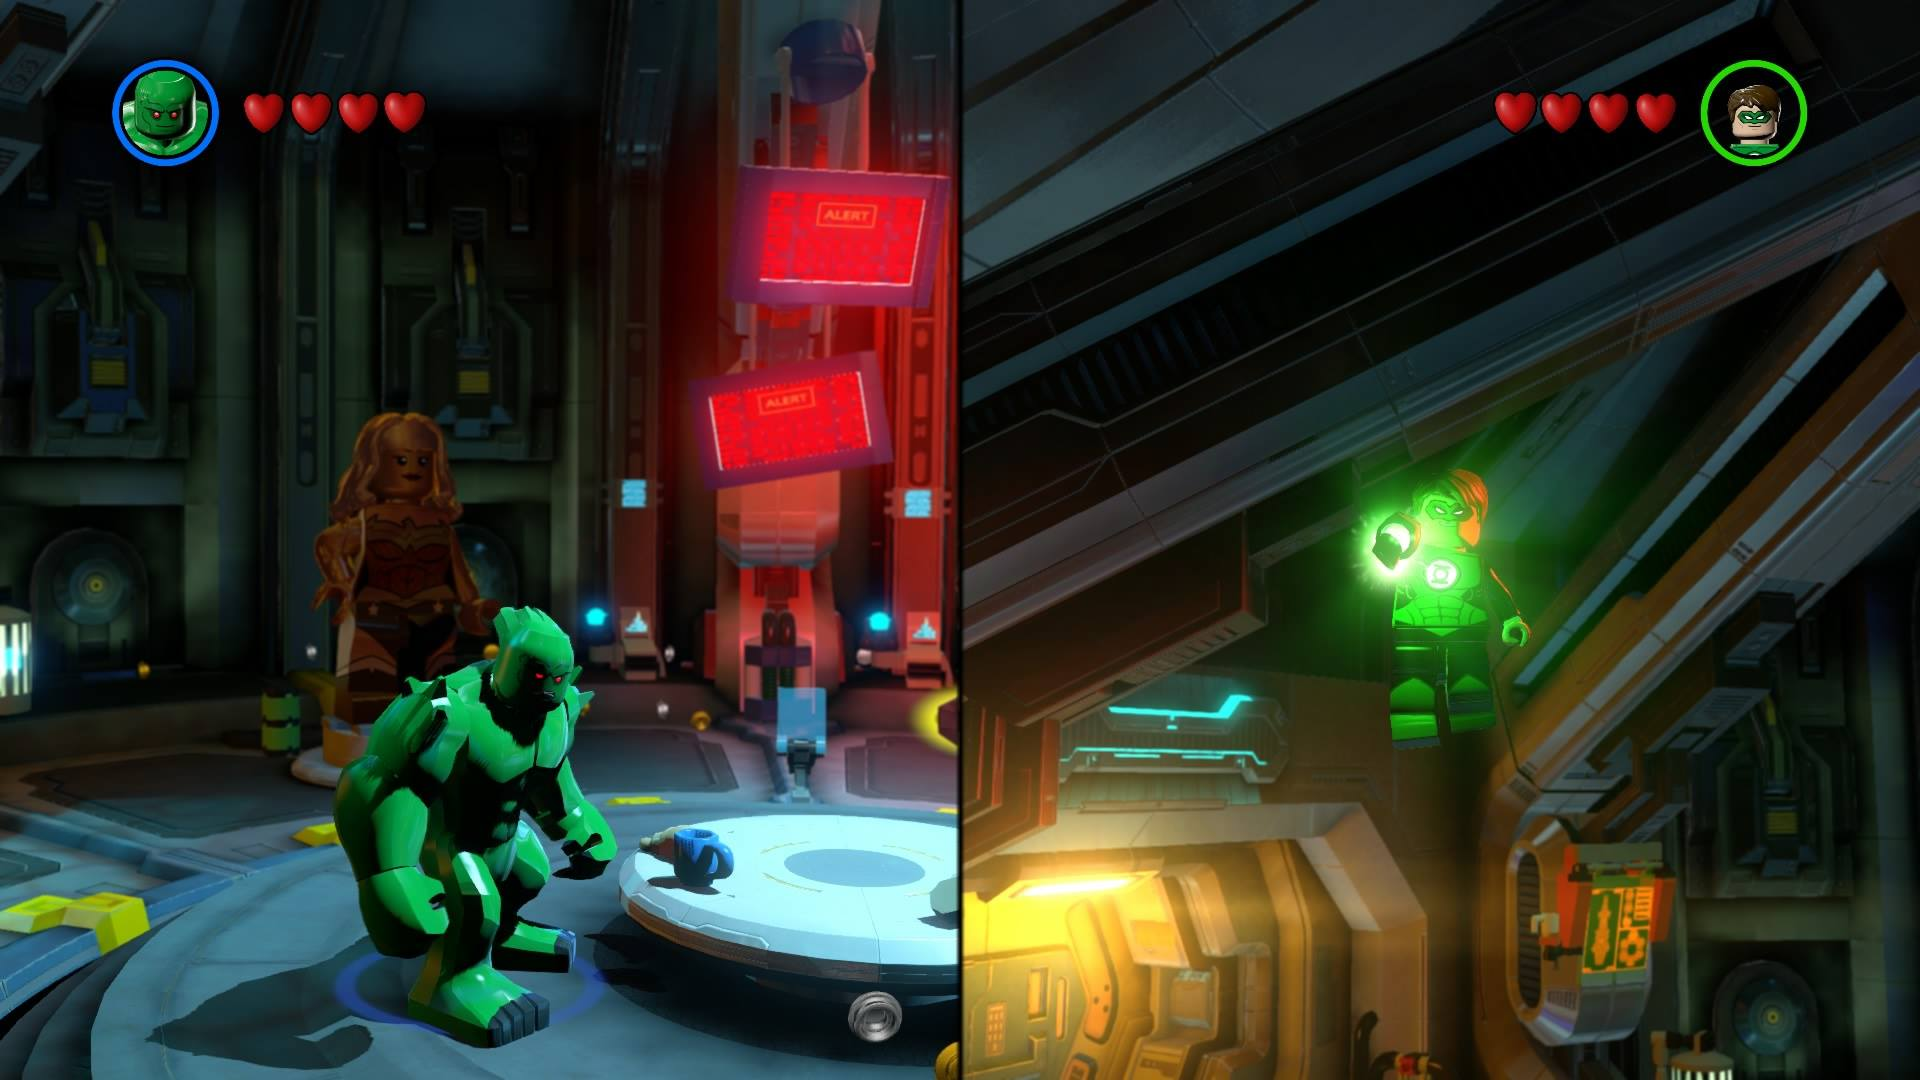 lego batman 3 beyond gotham green lantern split screen ps4